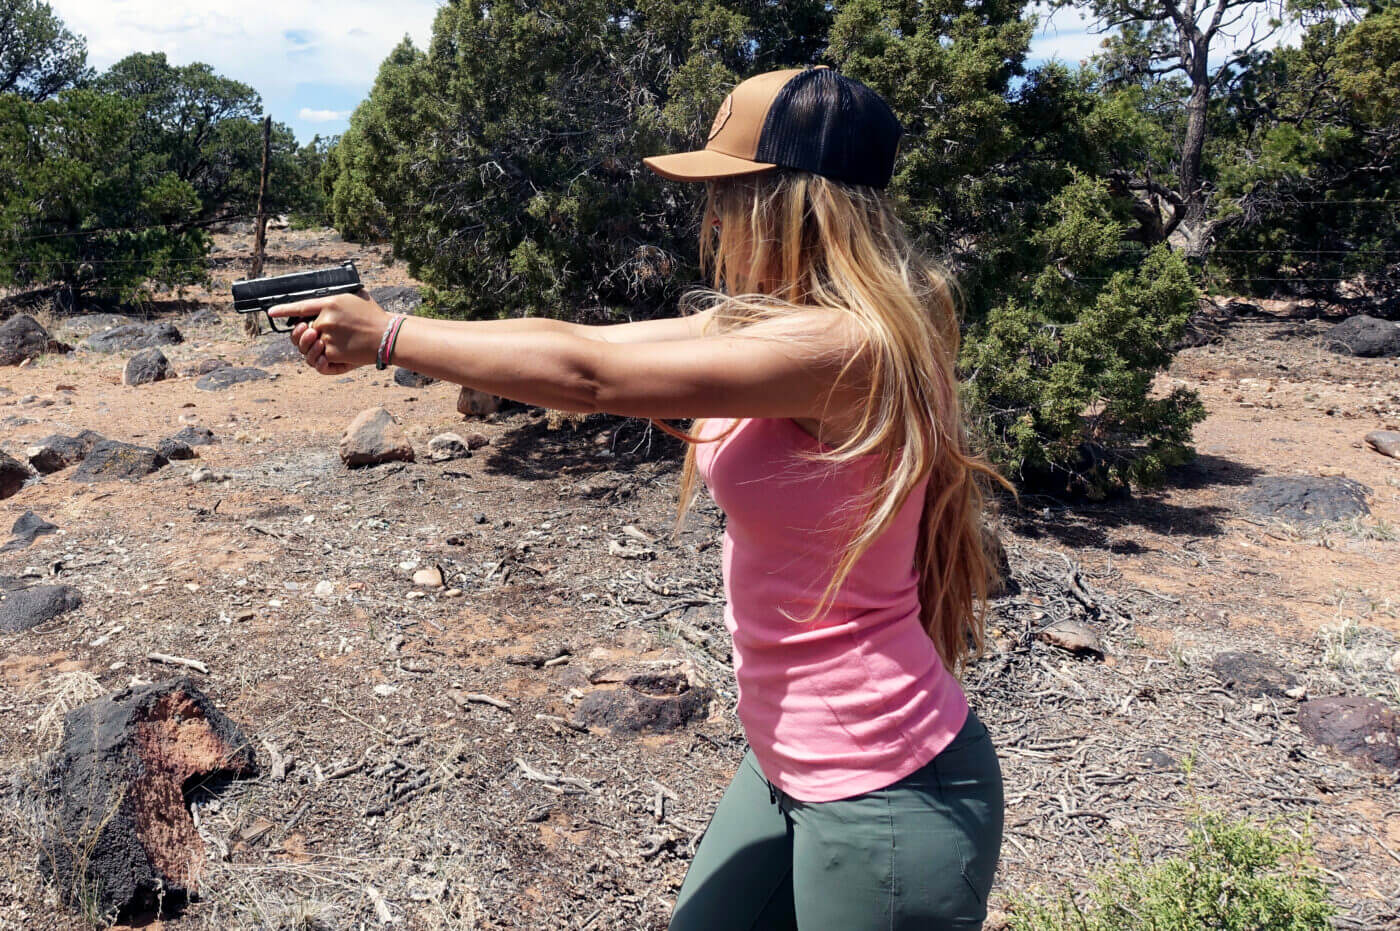 Woman shooting Springfield Hellcat